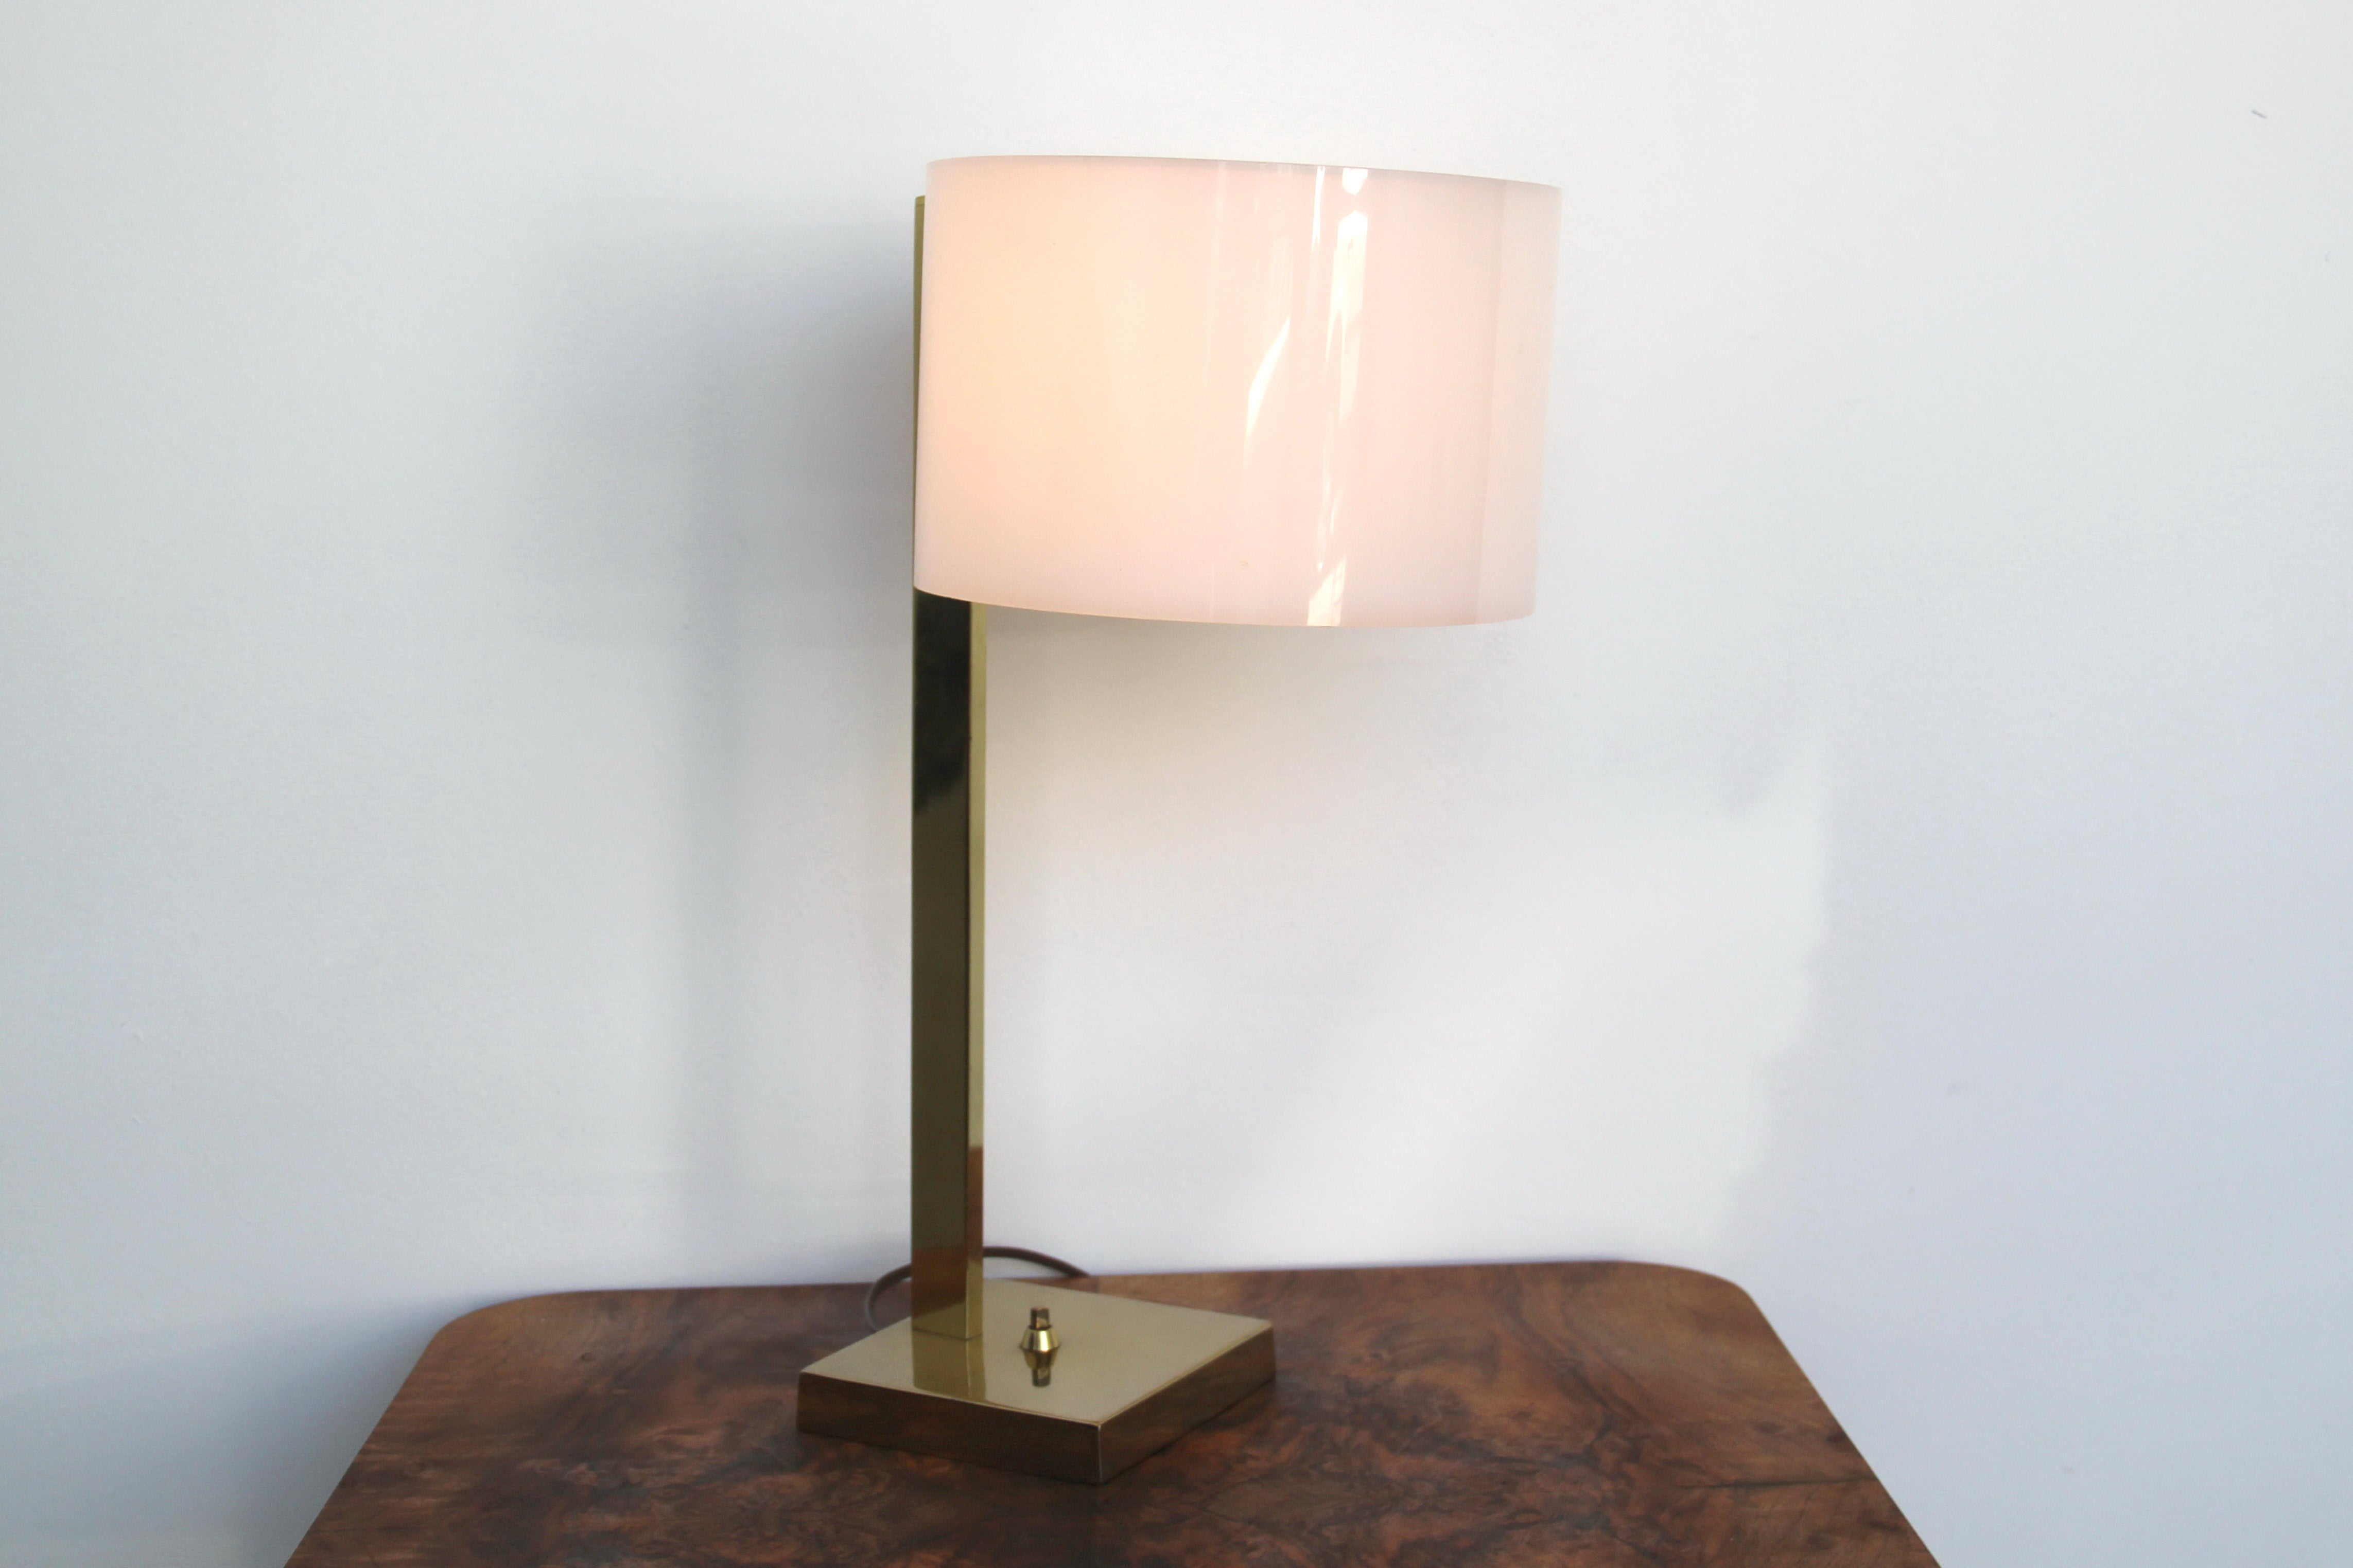 Image Of Brass Cantilever Lamp With Lucite Shade By Laurel Lamp Mfr. Co.